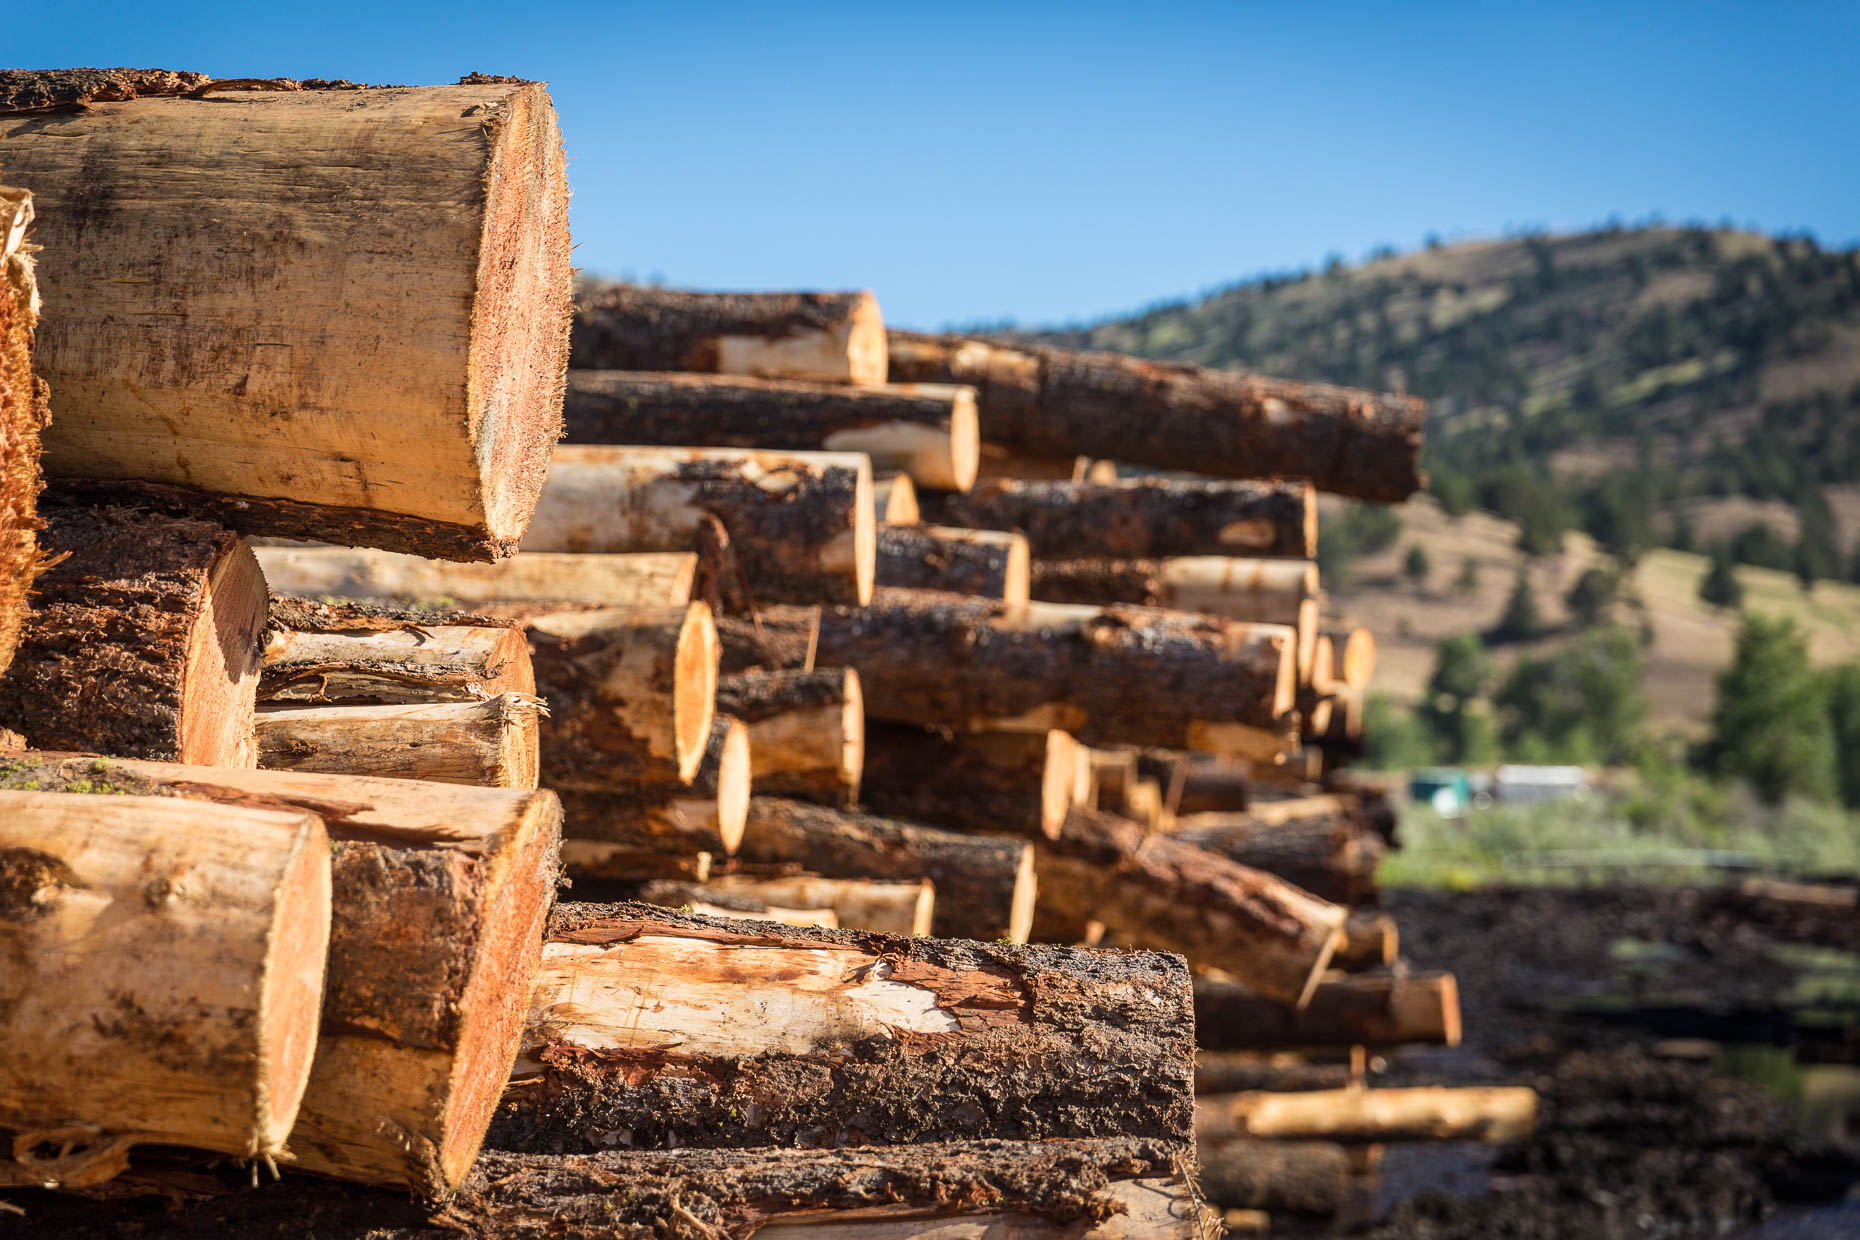 Detail of stack of logs waiting for processing at lumber mill, Malheur Lumber Company mill in John Day, Oregon by David Zaitz.